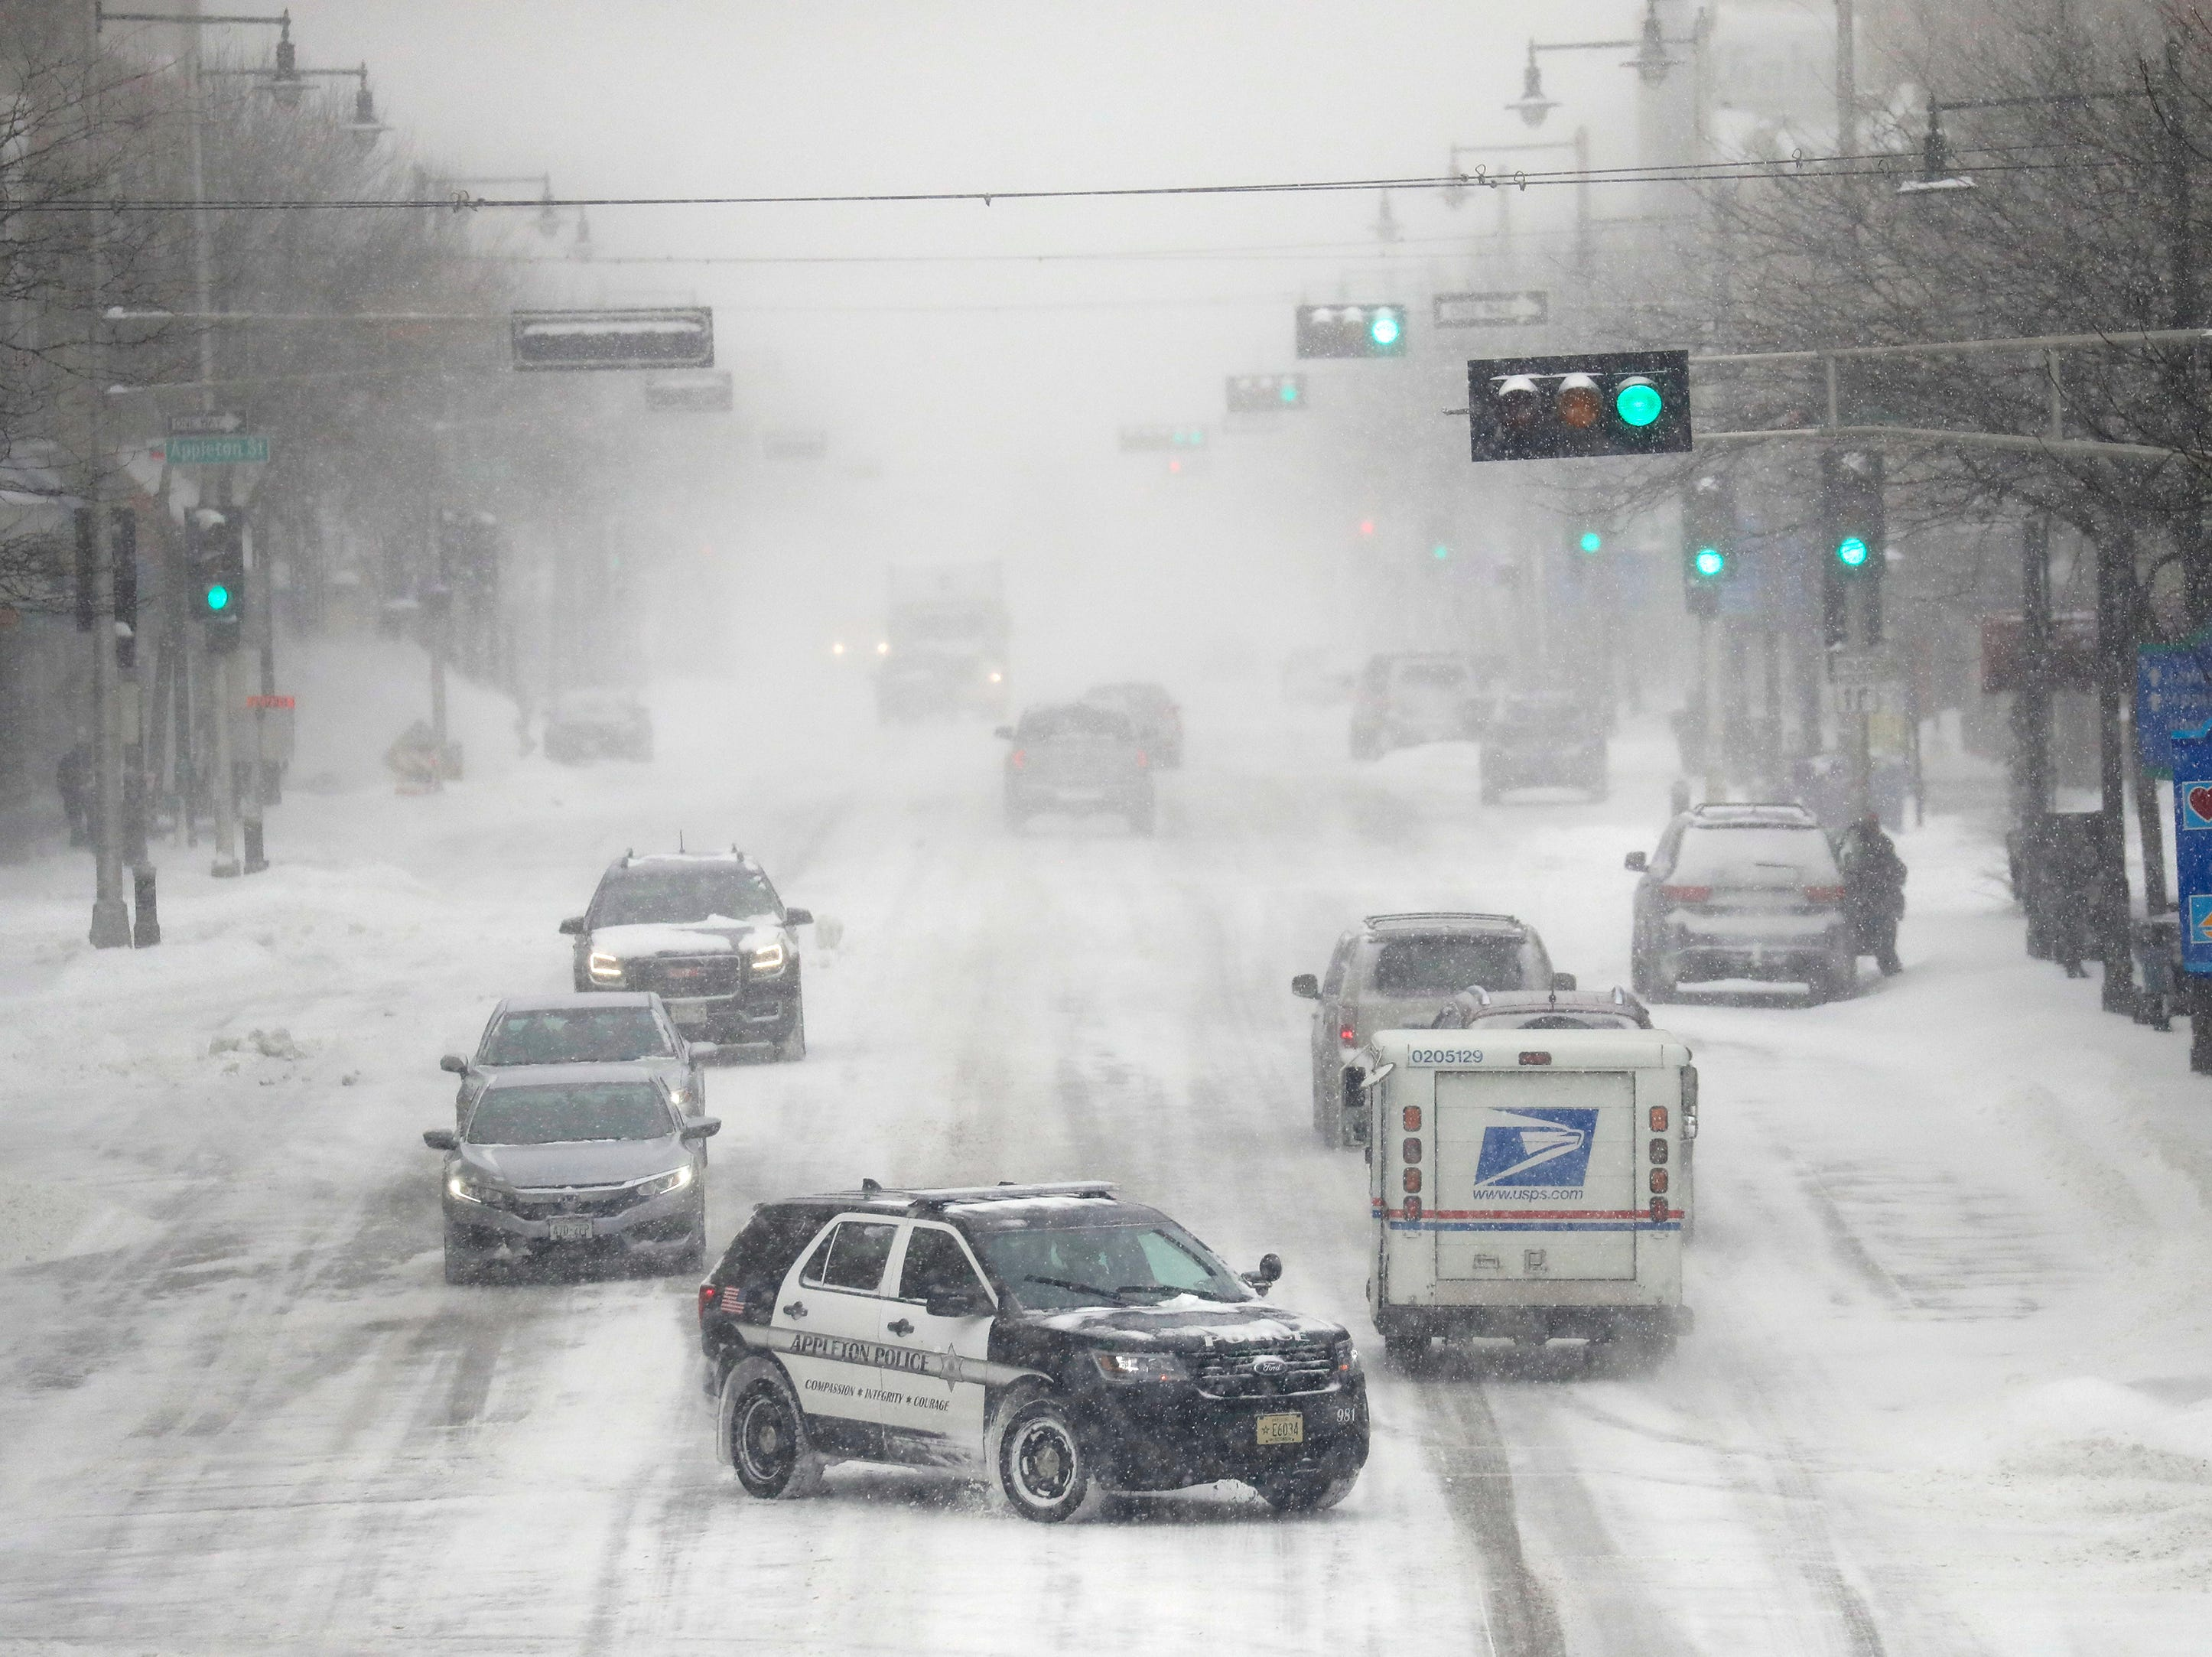 Traffic moves slowly along College Avenue during a snowstorm Monday, January 28, 2019, in downtown Appleton, Wis. 